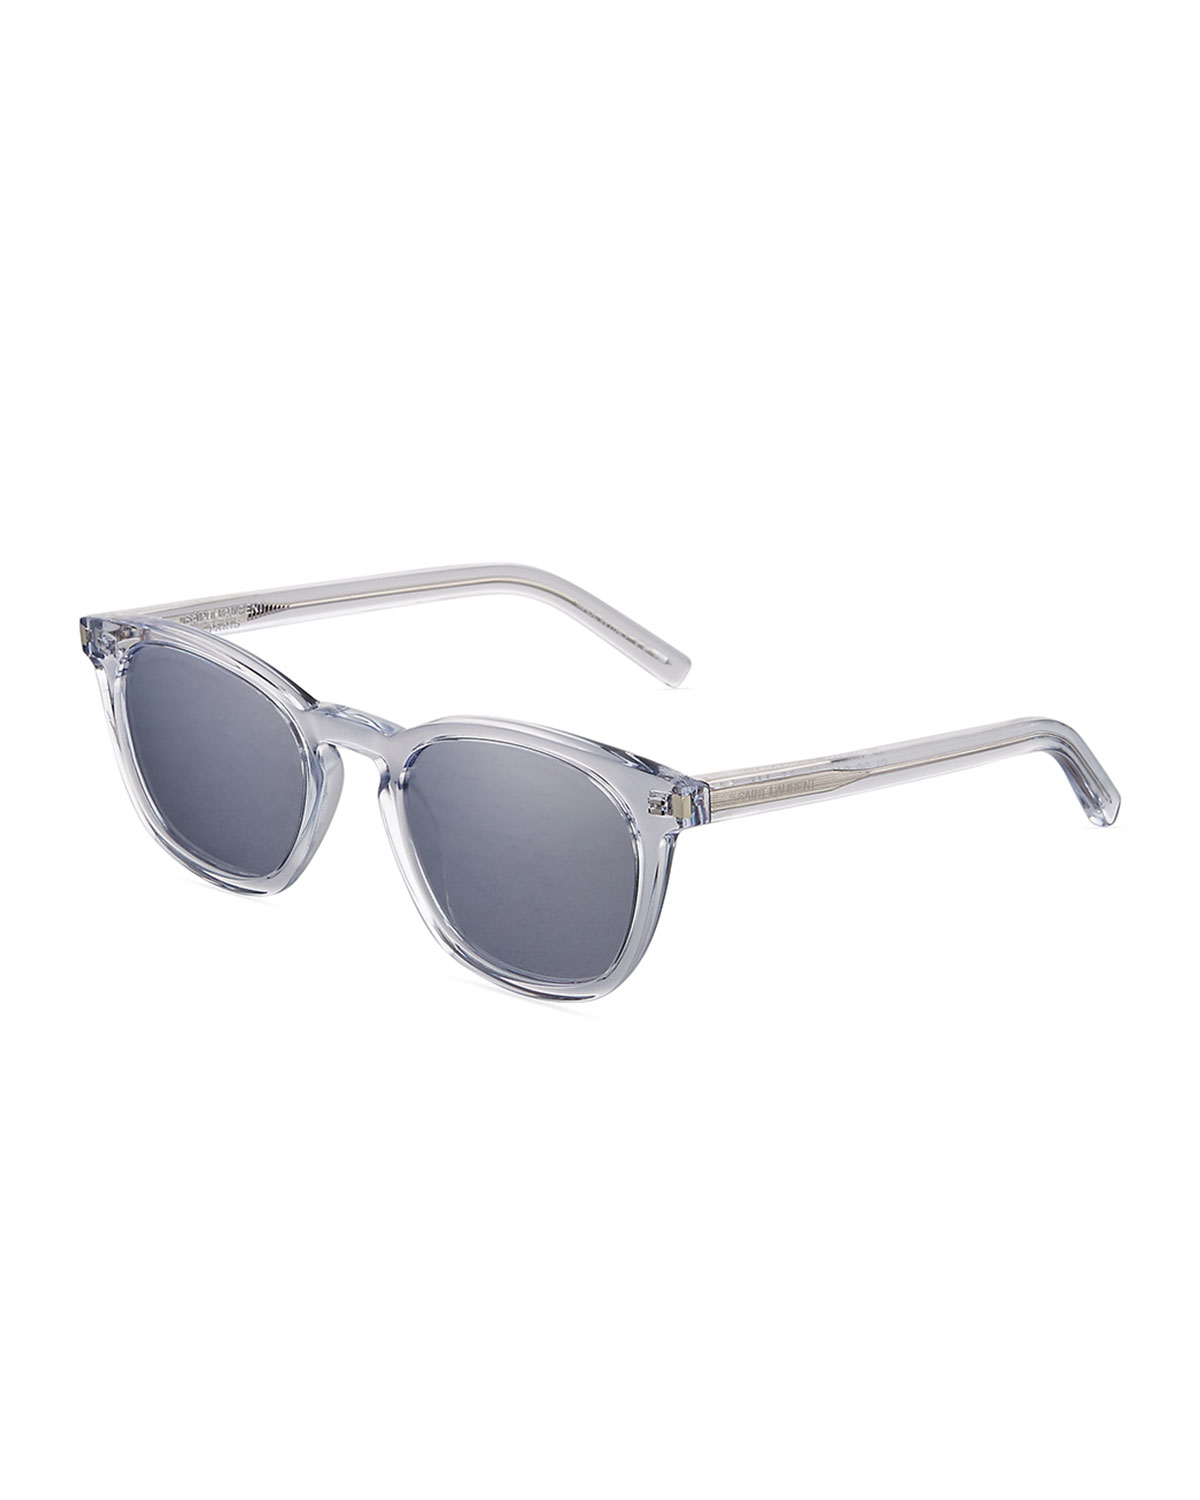 7464082a0b6 Saint Laurent Classic 28 Mirrored Square Acetate Sunglasses